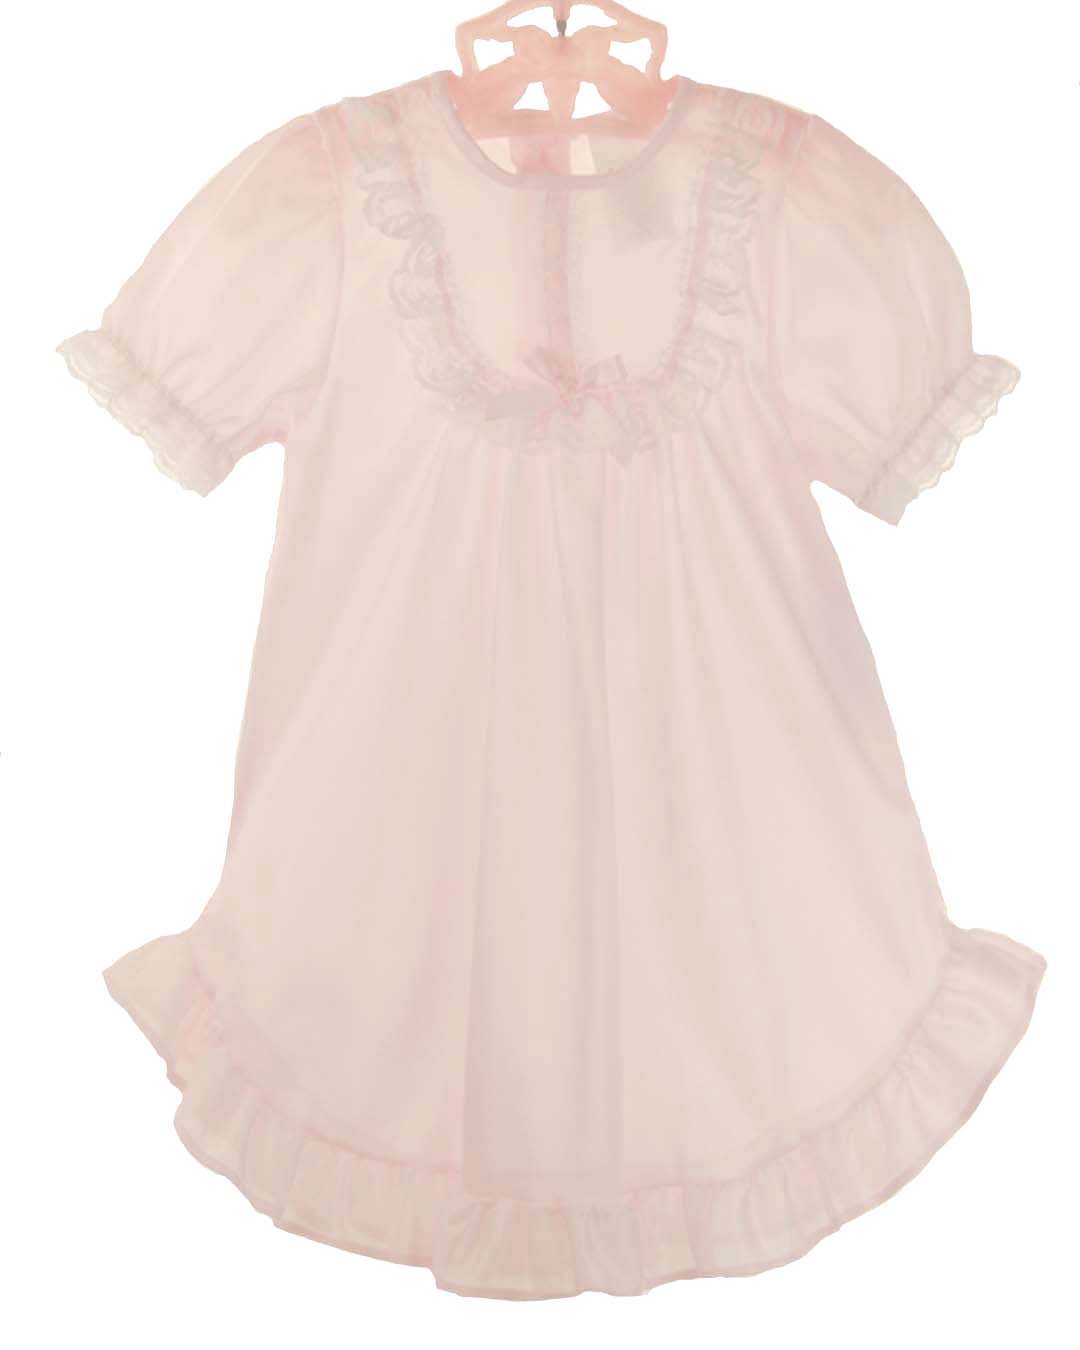 NEW Pale Pink Nylon Nightgown with Short Sleeves for Babies ...